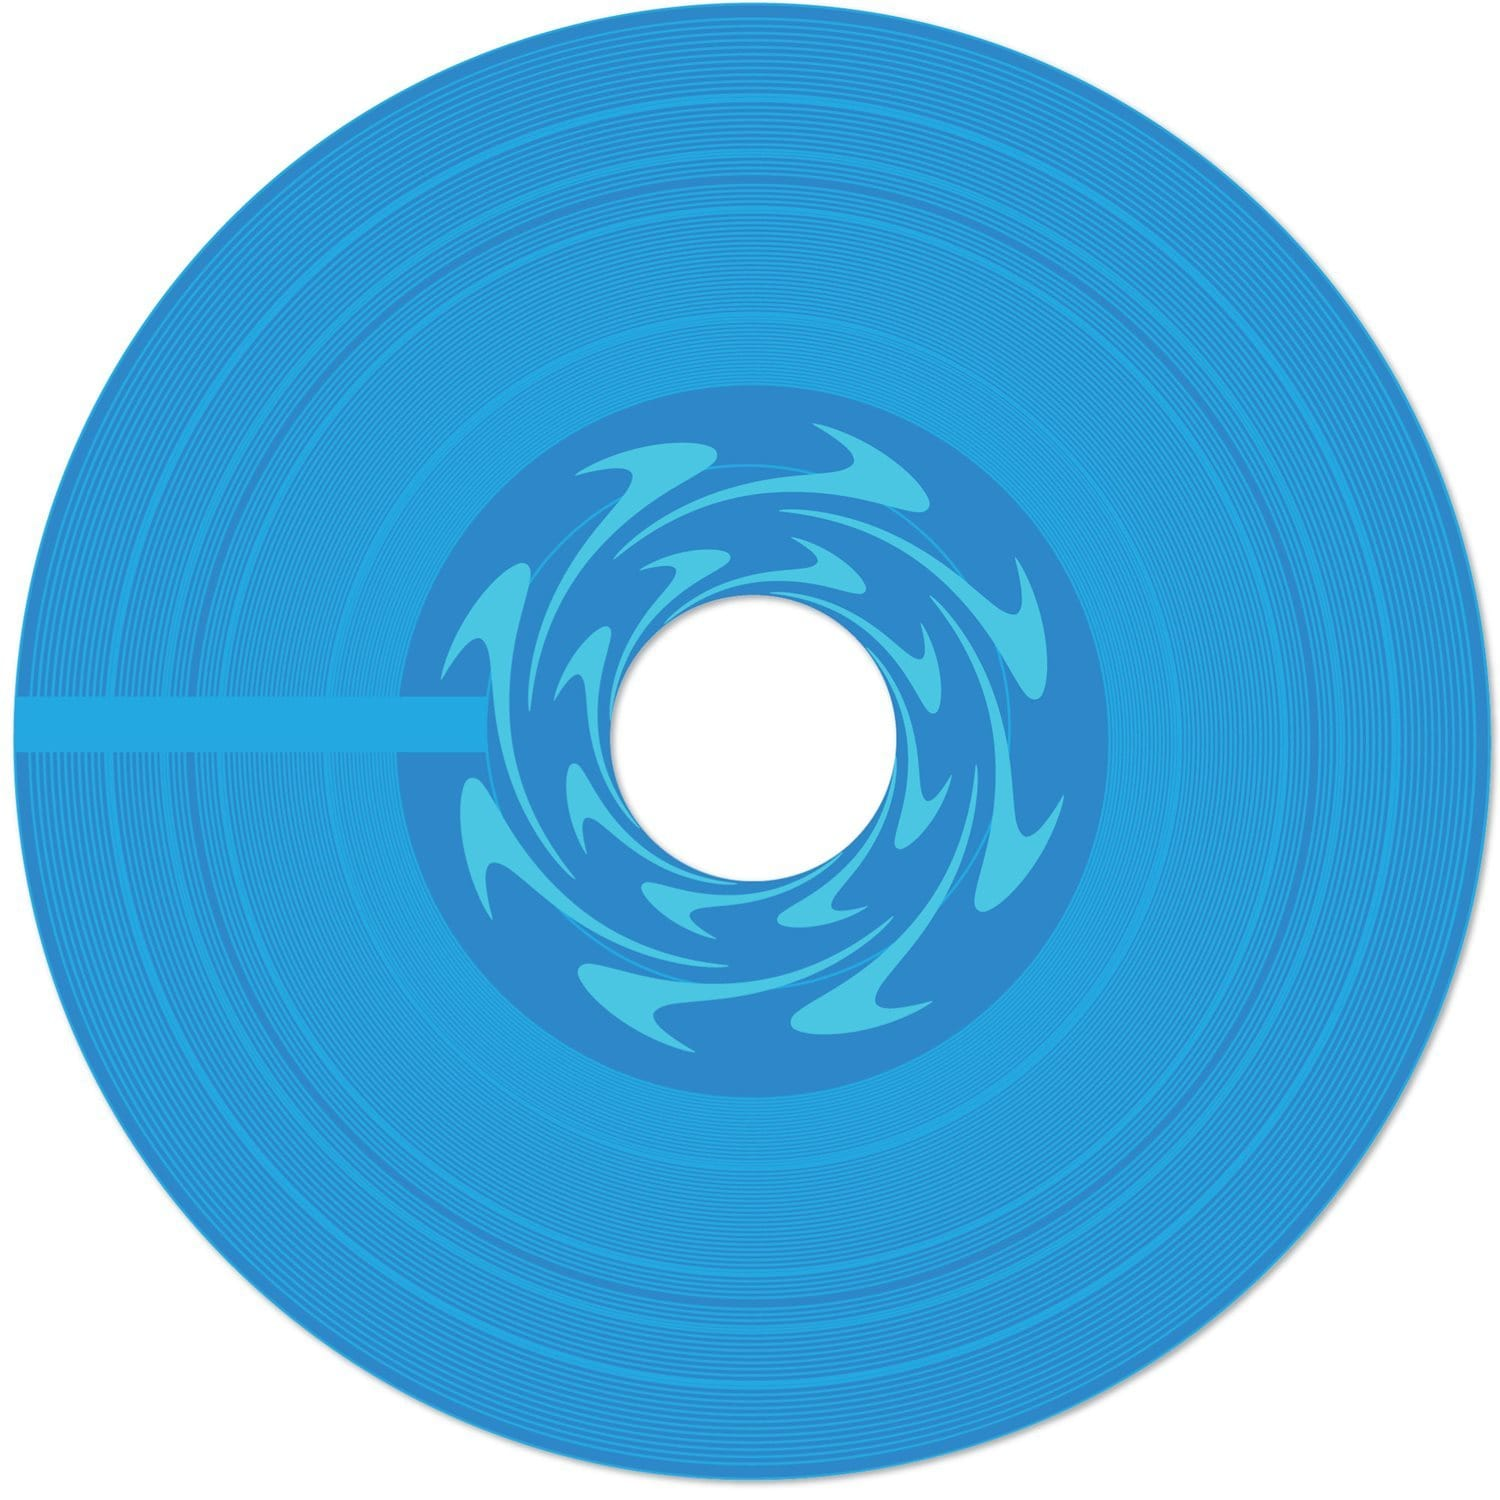 Denon Dj Colored Blue Vinyl For Sc3900 Dns3700 Prosound And Stage Lighting